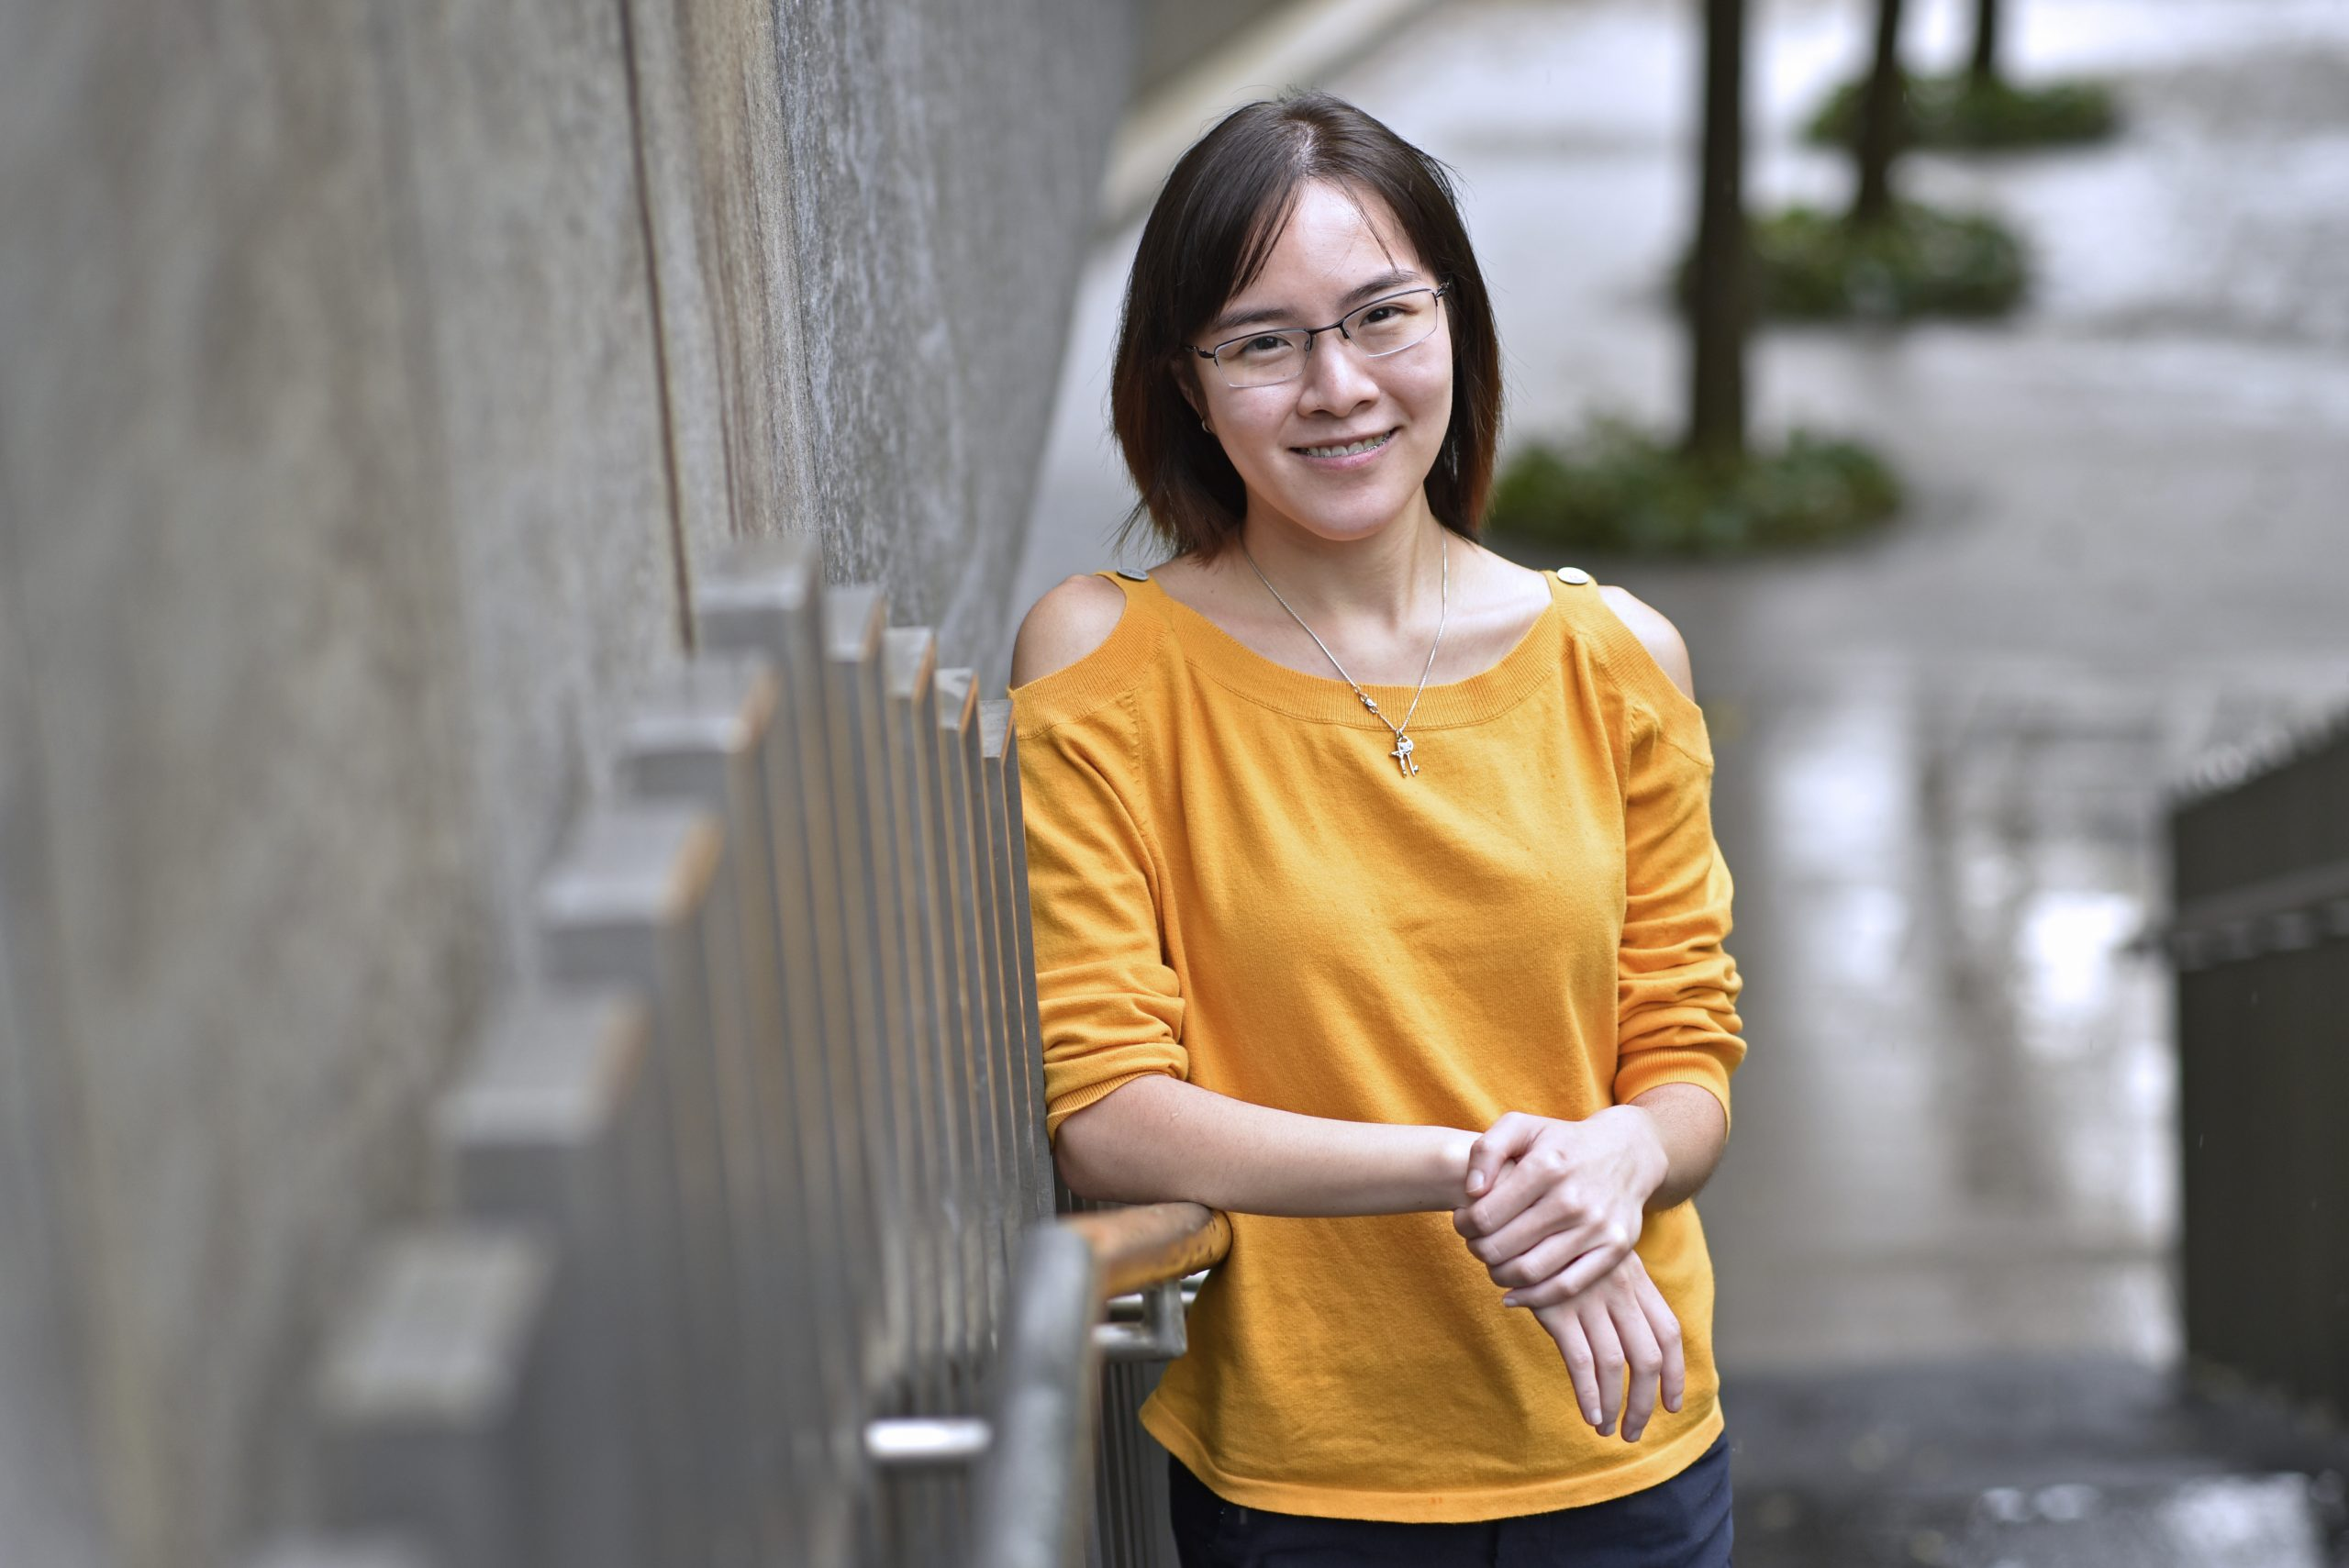 Profile of Anne Neo, founder of The Giving Collective.